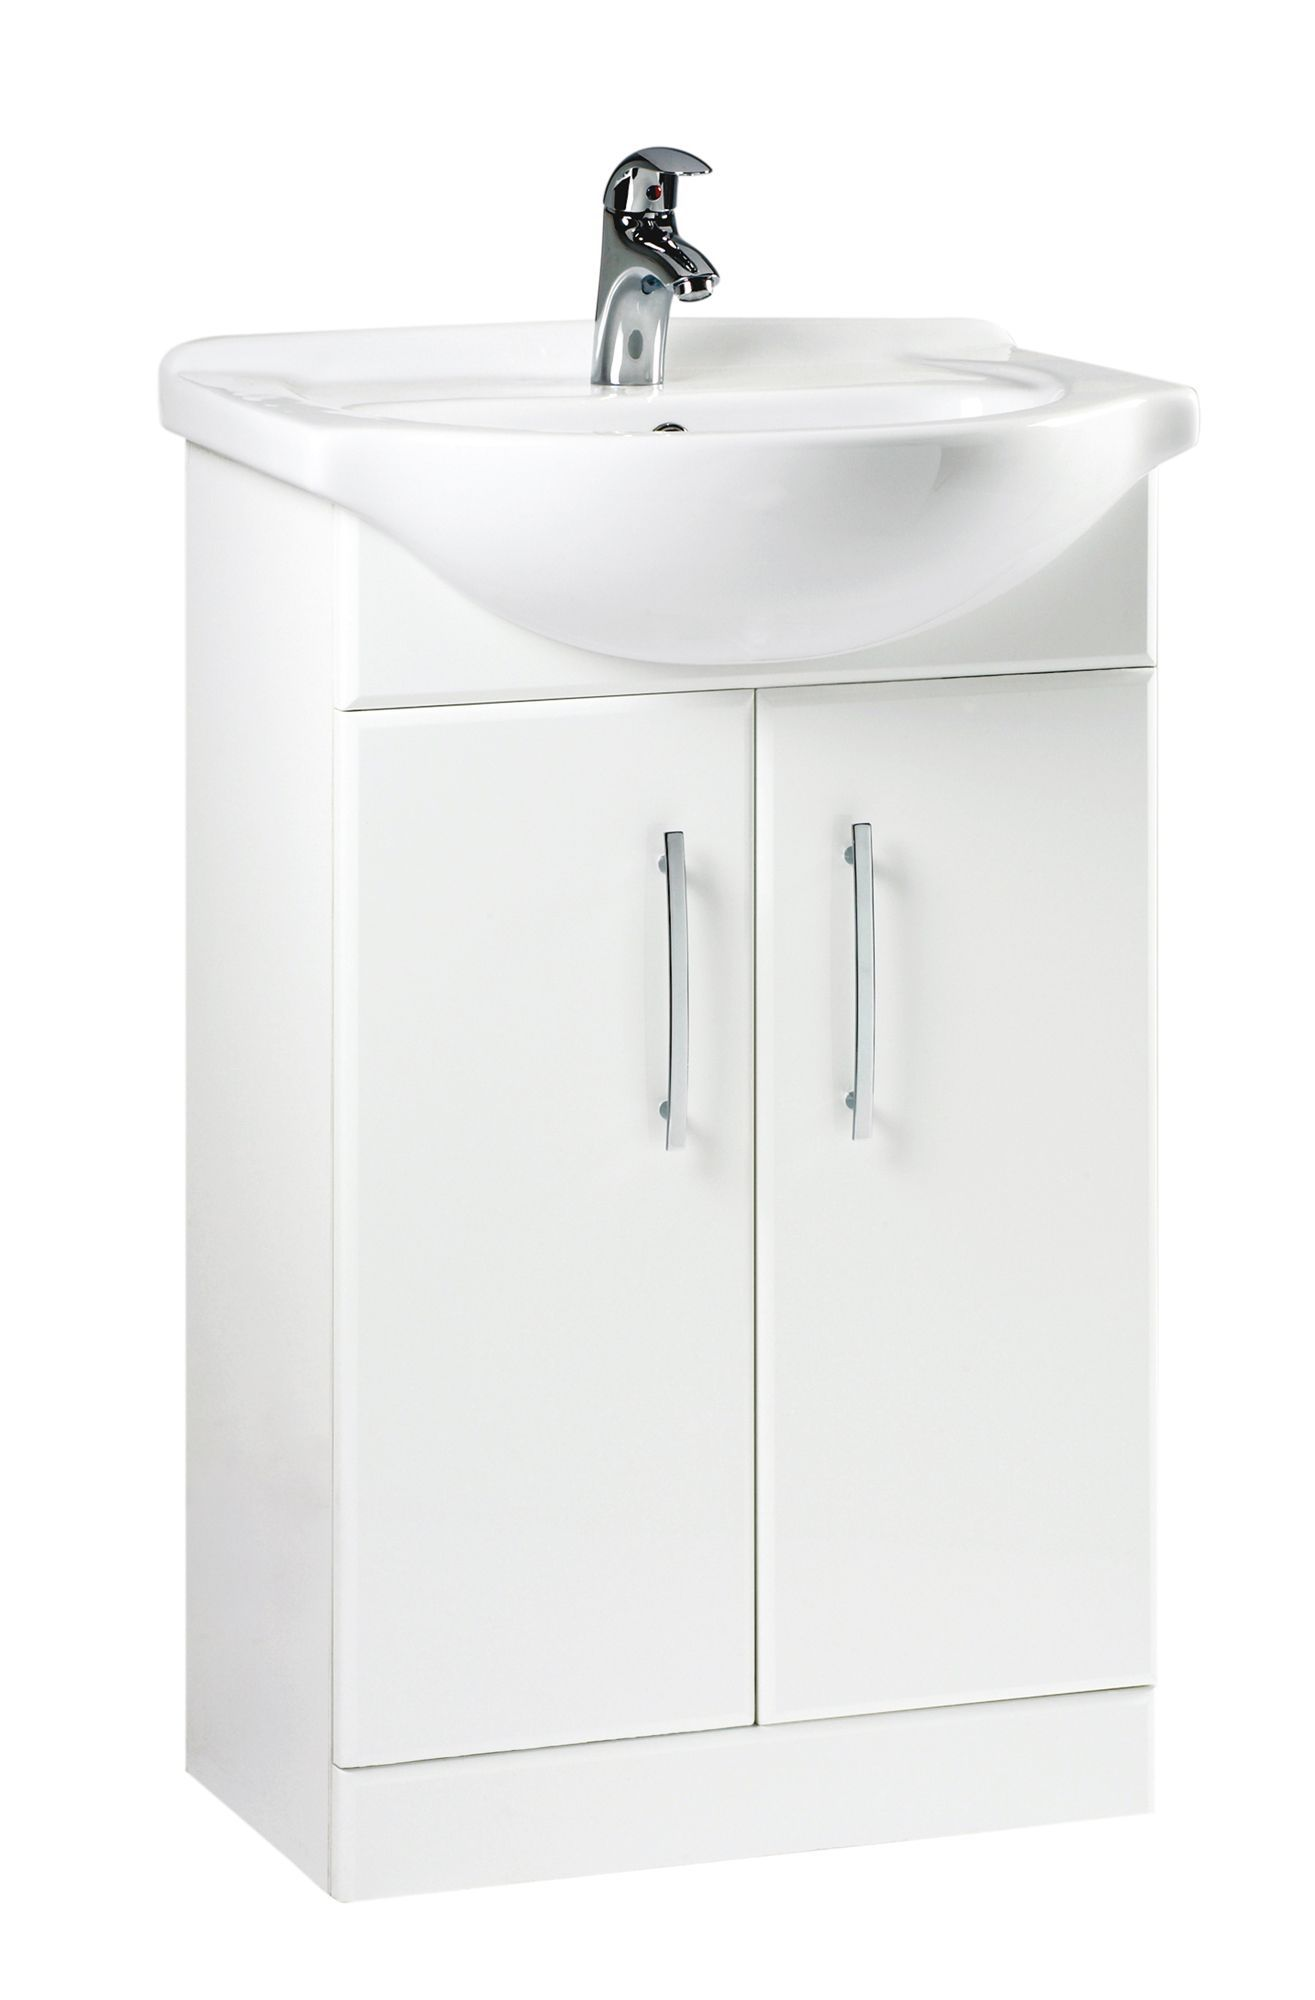 B&Q White Vanity Unit & Basin | Departments | DIY at B&Q